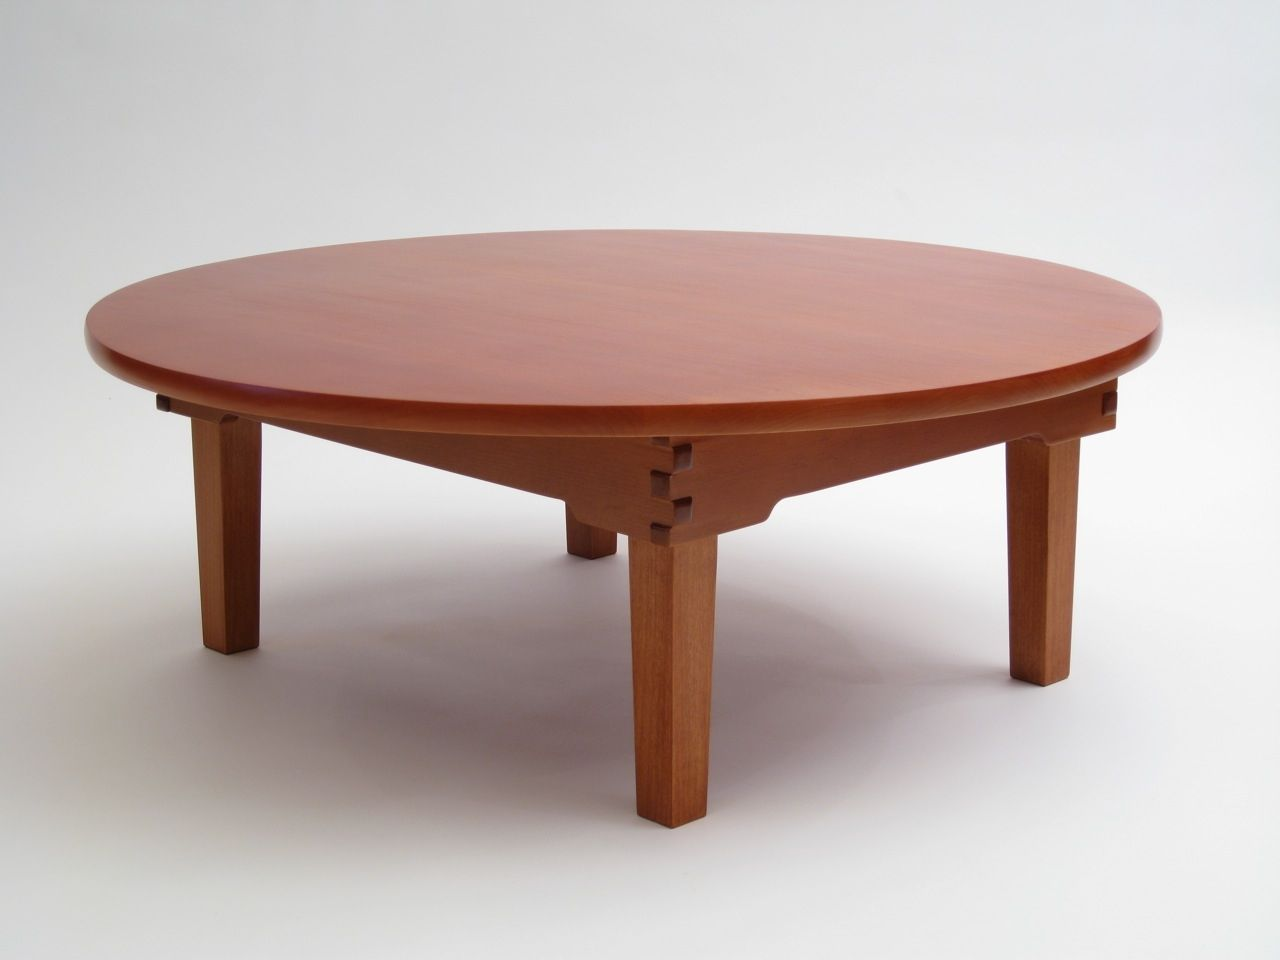 Custom Made Japanese Chabudai A Low Folding Table By